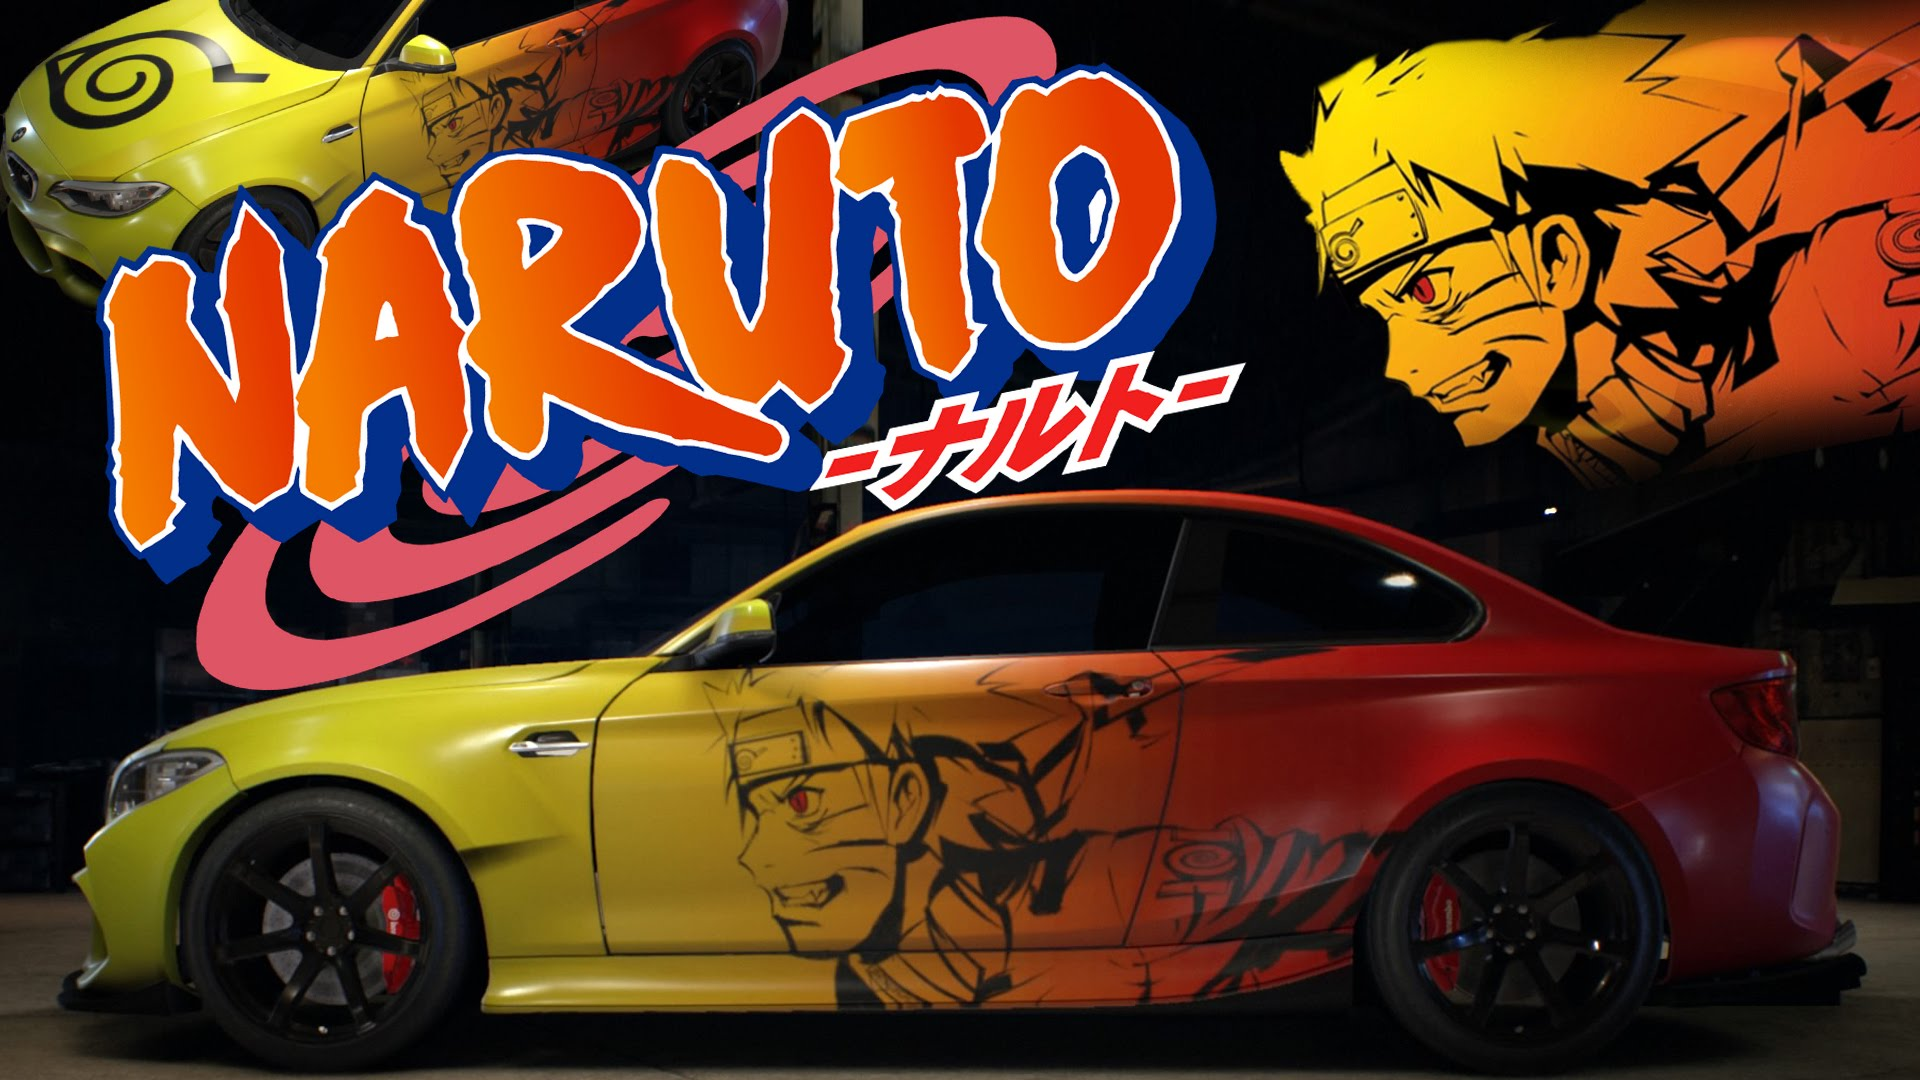 Anime vehicle wrap stickers mary rosh